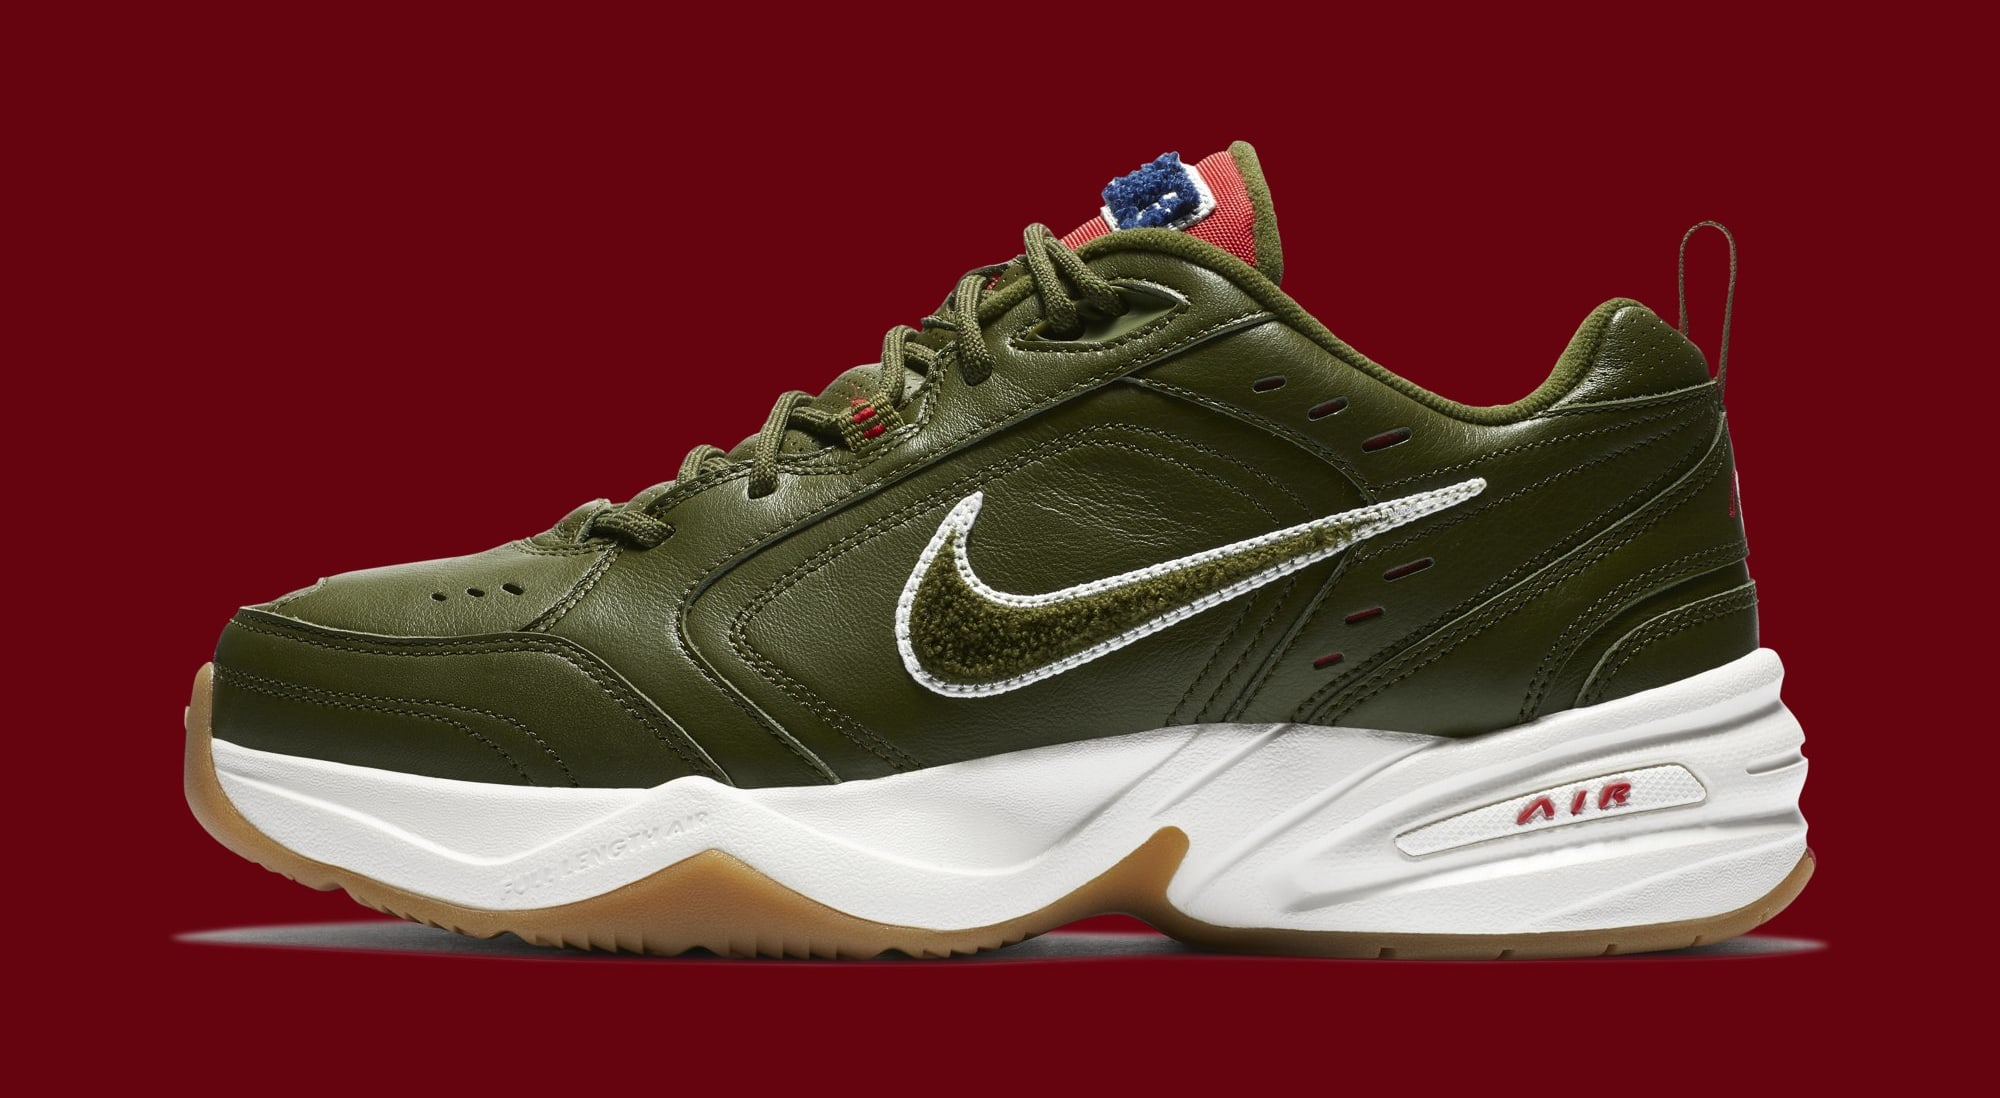 Nike Air Monarch 4 'Weekend Campout' AV6676-300 (Lateral)